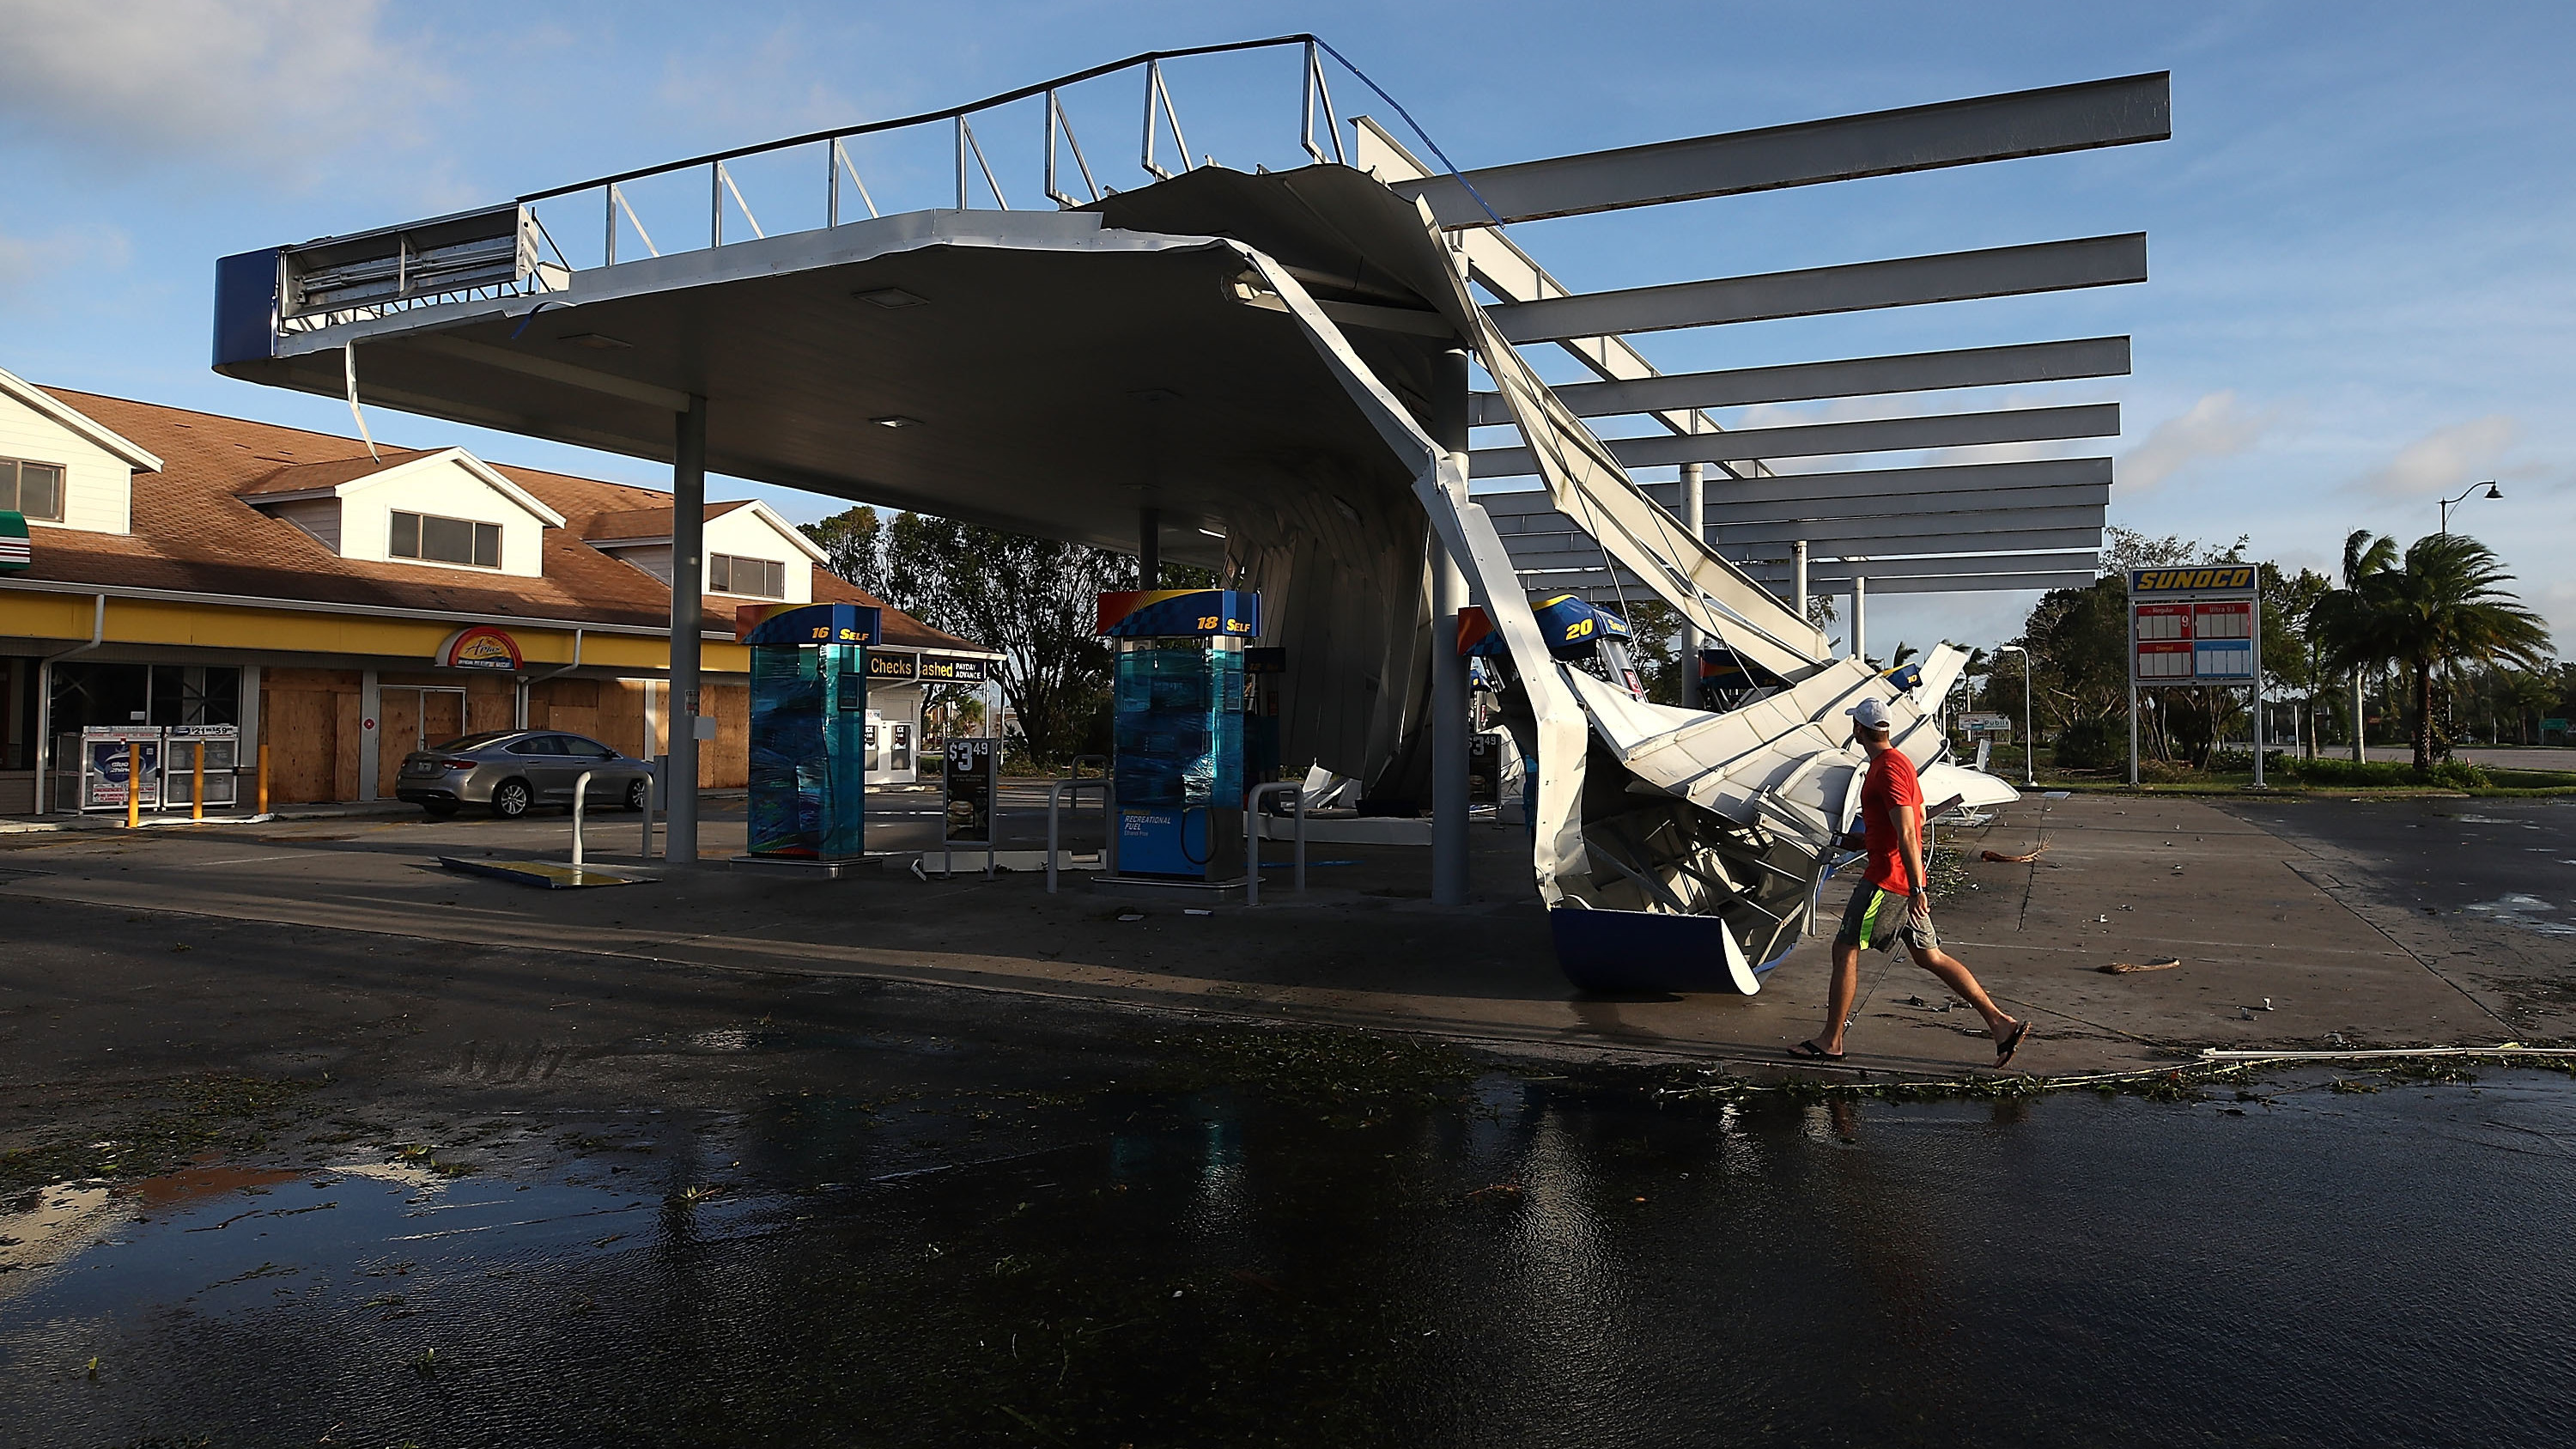 Hurricane Irma's winds tore up the roof of a gas station in Bonita Springs, Fla., as seen in this photo from Monday. (Mark Wilson/Getty Images)